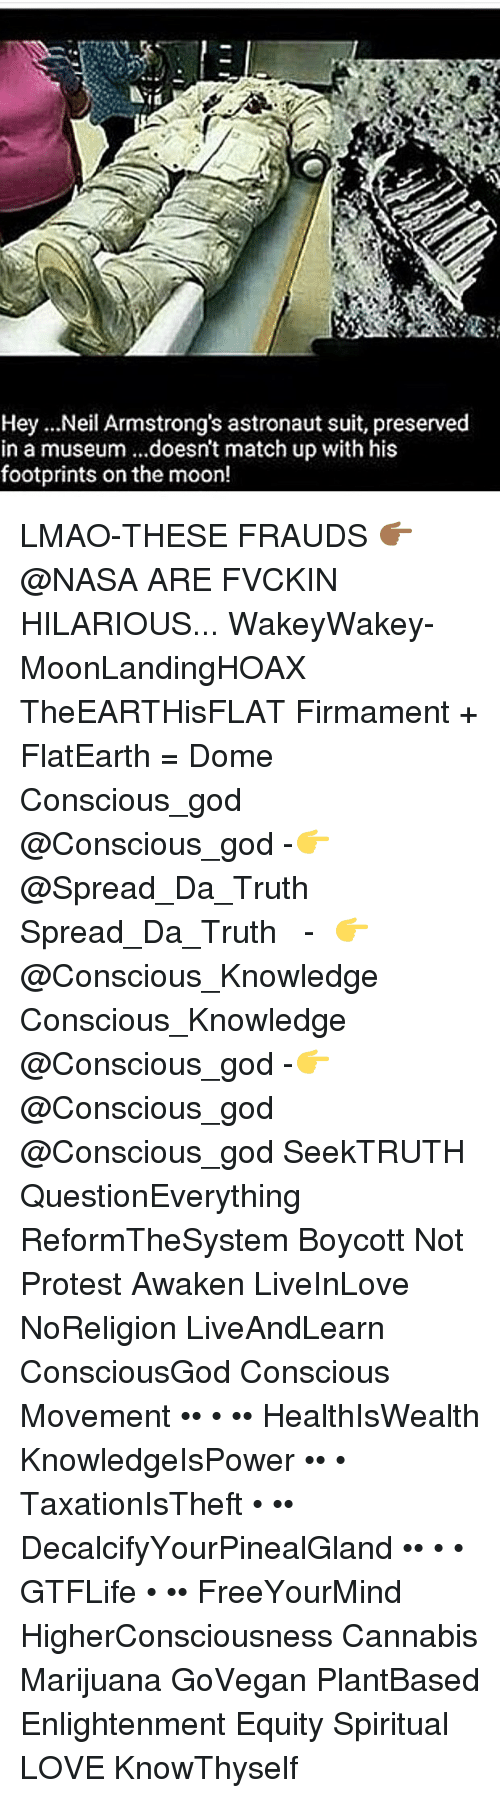 neile: Hey ...Neil Armstrong's astronaut suit, preserved  in a museum ...doesn't match up with his  footprints onthe moon! LMAO-THESE FRAUDS 👉🏾@NASA ARE FVCKIN HILARIOUS... WakeyWakey- MoonLandingHOAX TheEARTHisFLAT Firmament + FlatEarth = Dome Conscious_god @Conscious_god -👉@Spread_Da_Truth Spread_Da_Truth ● ● -👉@Conscious_Knowledge Conscious_Knowledge ● ● @Conscious_god -👉@Conscious_god @Conscious_god SeekTRUTH QuestionEverything ReformTheSystem Boycott Not Protest Awaken LiveInLove NoReligion LiveAndLearn ConsciousGod Conscious Movement •• • •• HealthIsWealth KnowledgeIsPower •• • TaxationIsTheft • •• DecalcifyYourPinealGland •• • • GTFLife • •• FreeYourMind HigherConsciousness Cannabis Marijuana GoVegan PlantBased Enlightenment Equity Spiritual LOVE KnowThyself